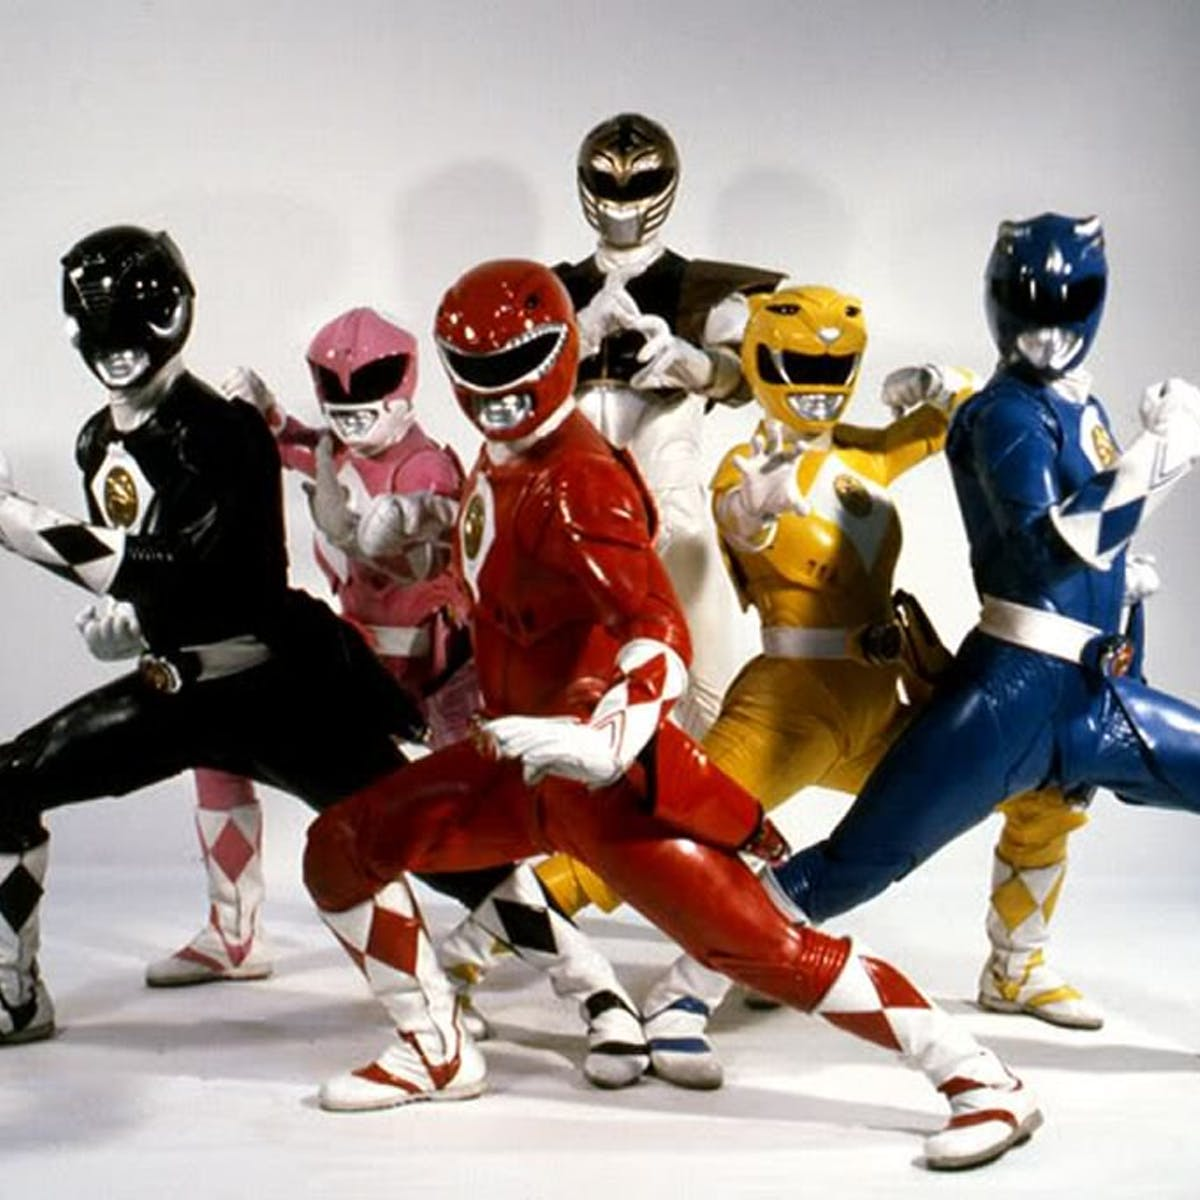 Power Rangers' 1995 Movie Comes to Blu-ray, Finally, in an Awesome